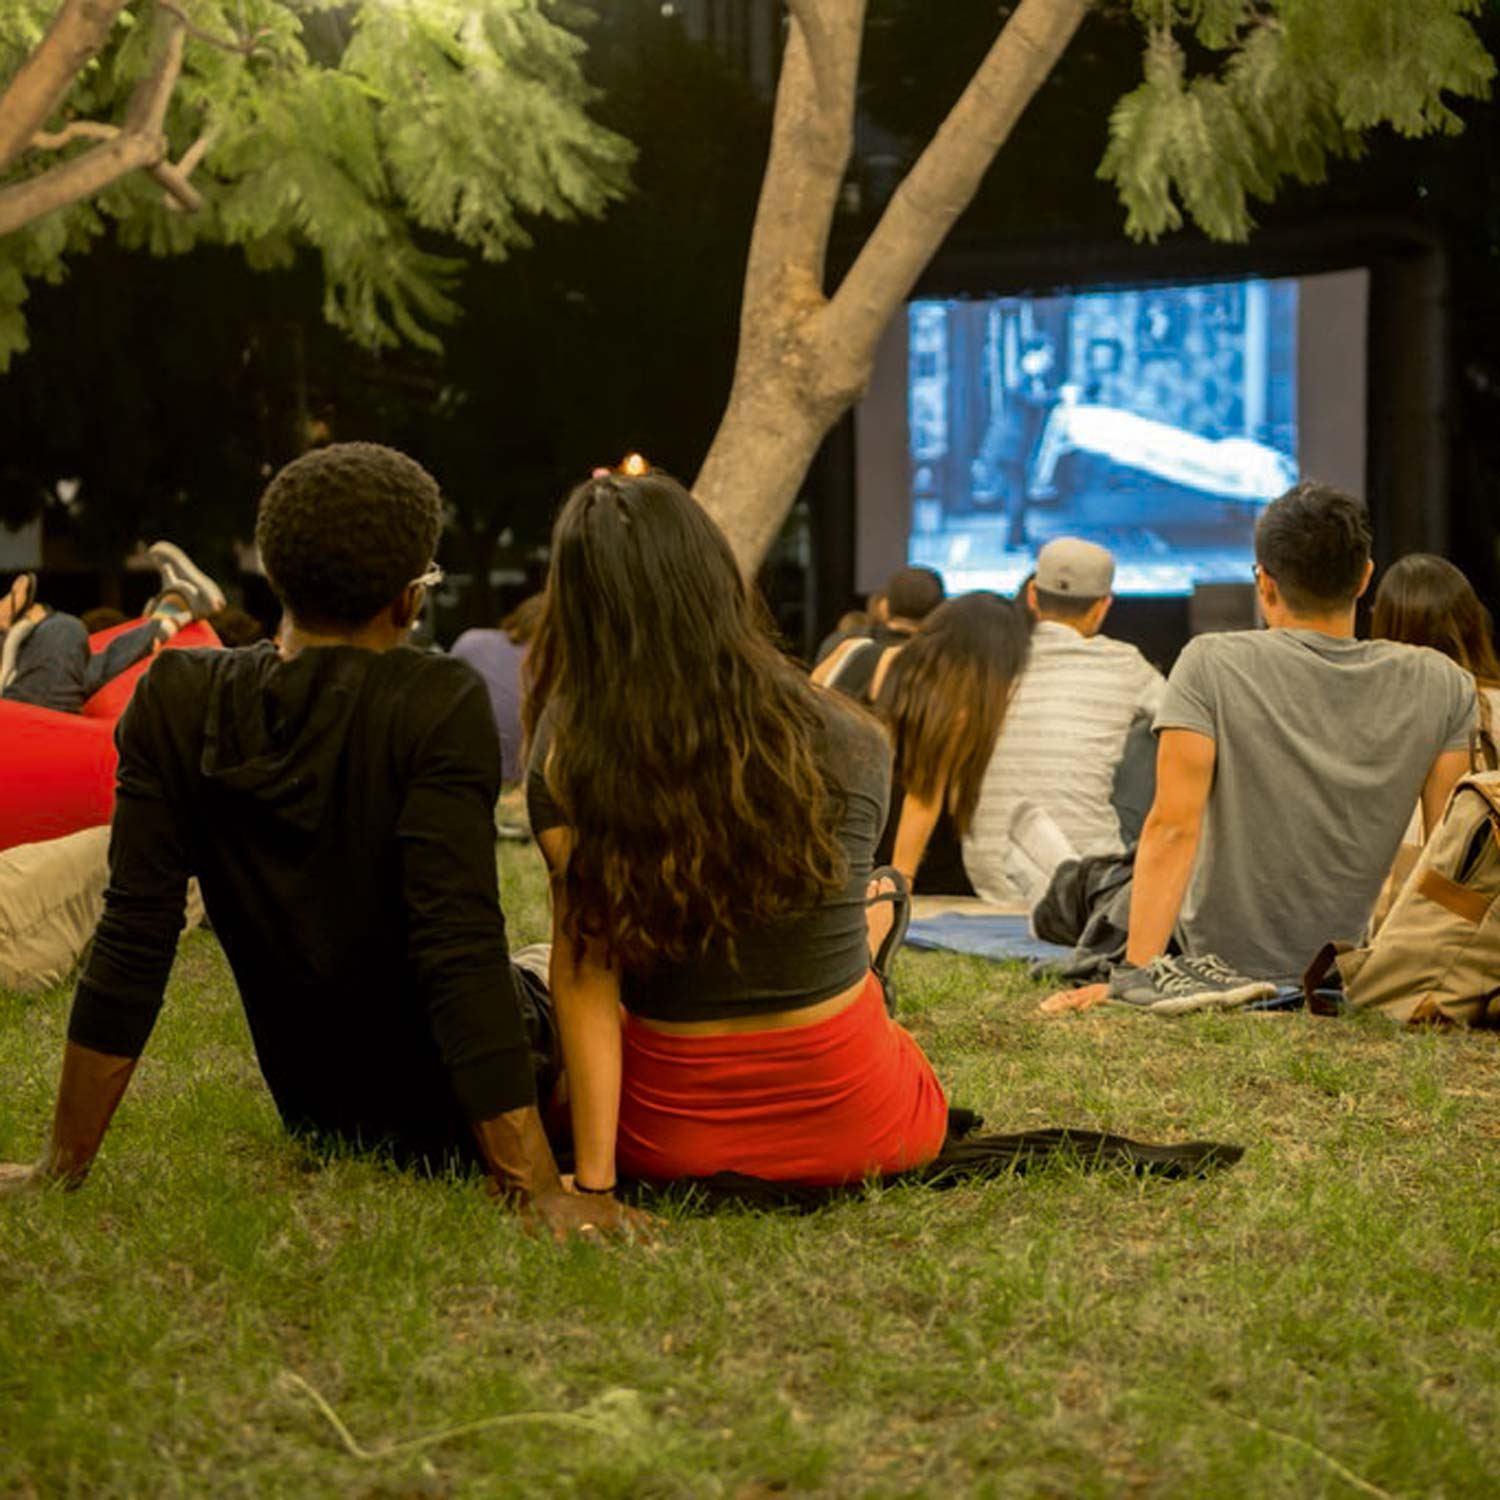 Image of Couple Watching Movie Outdoors